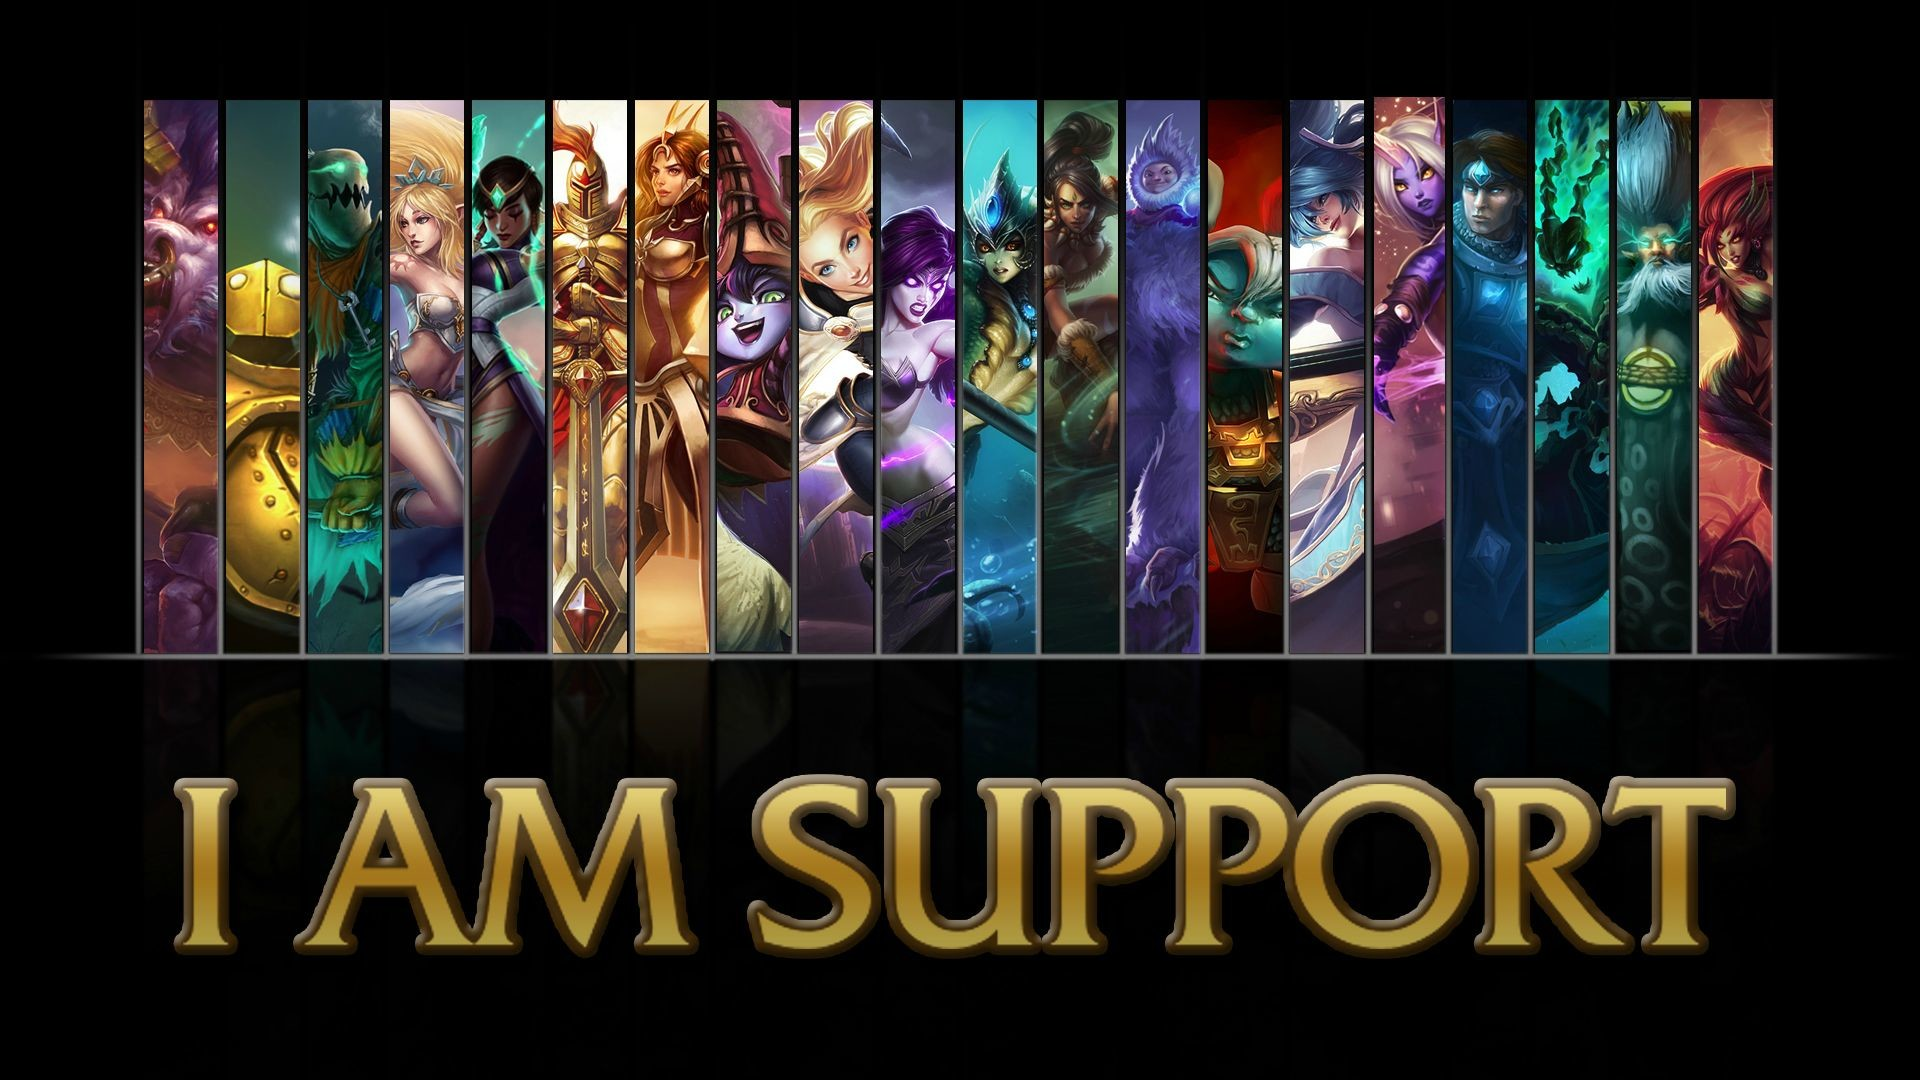 """League of Legends """"I AM SUPPORT"""" wallpaper I created"""